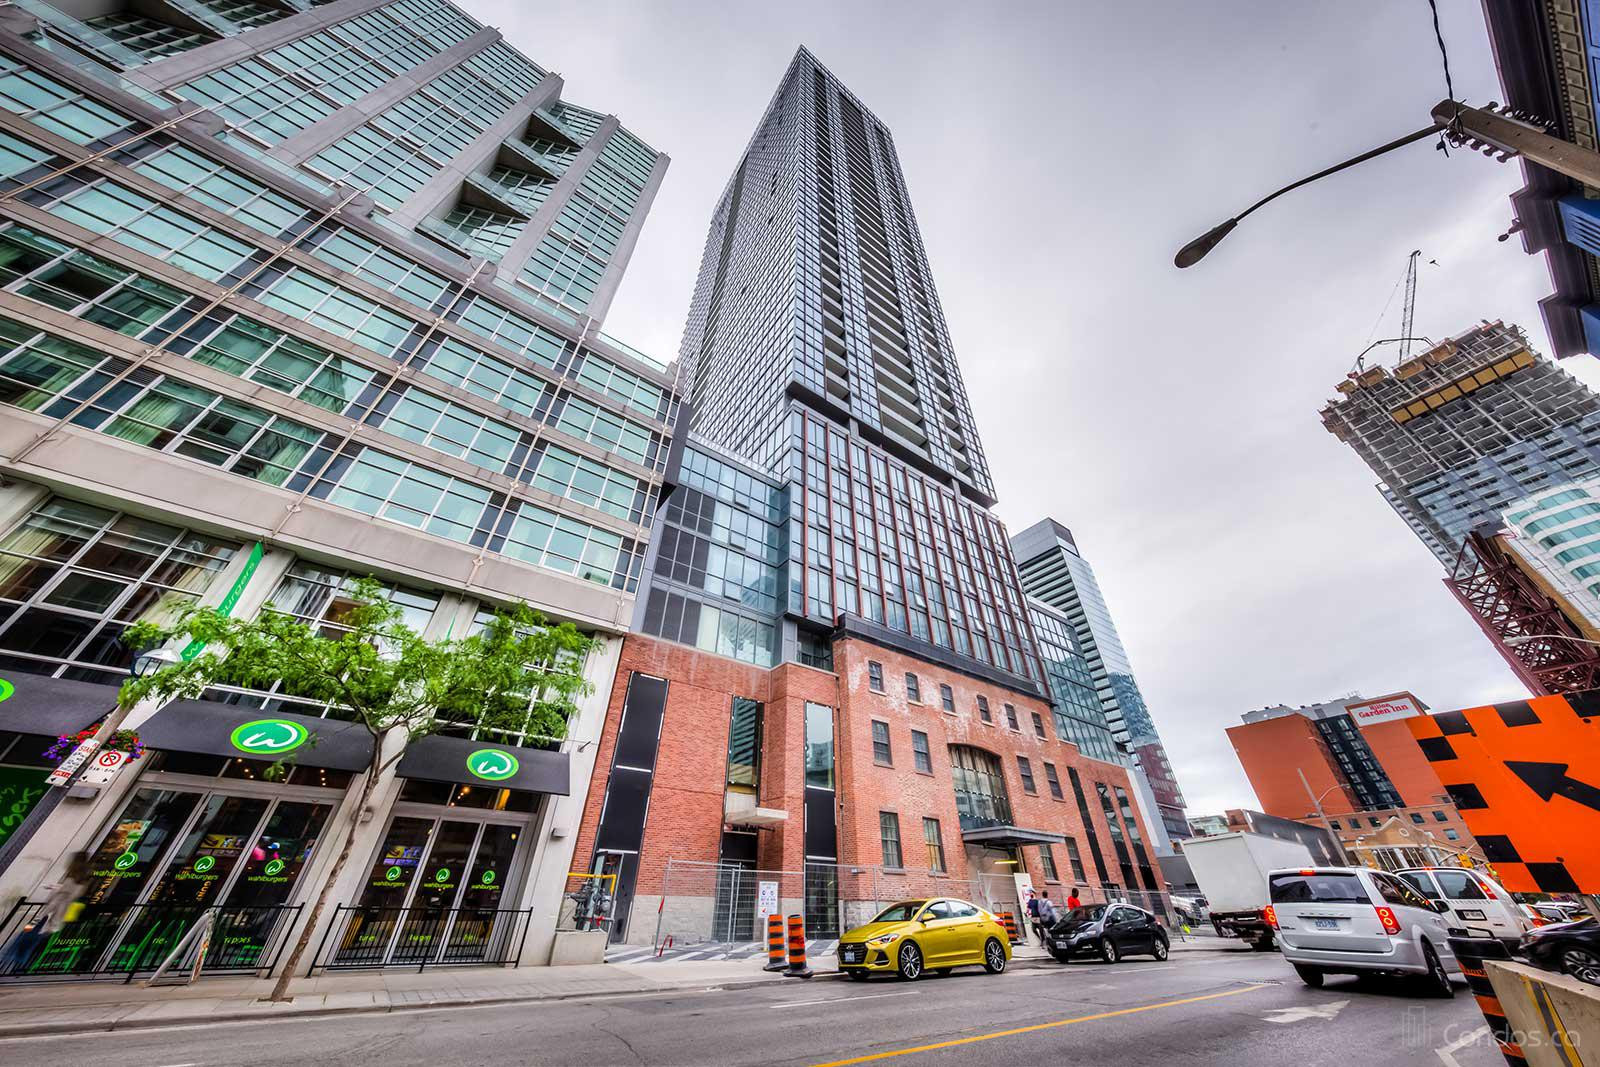 Bisha Hotel & Residences at 88 Blue Jays Way, Toronto 0